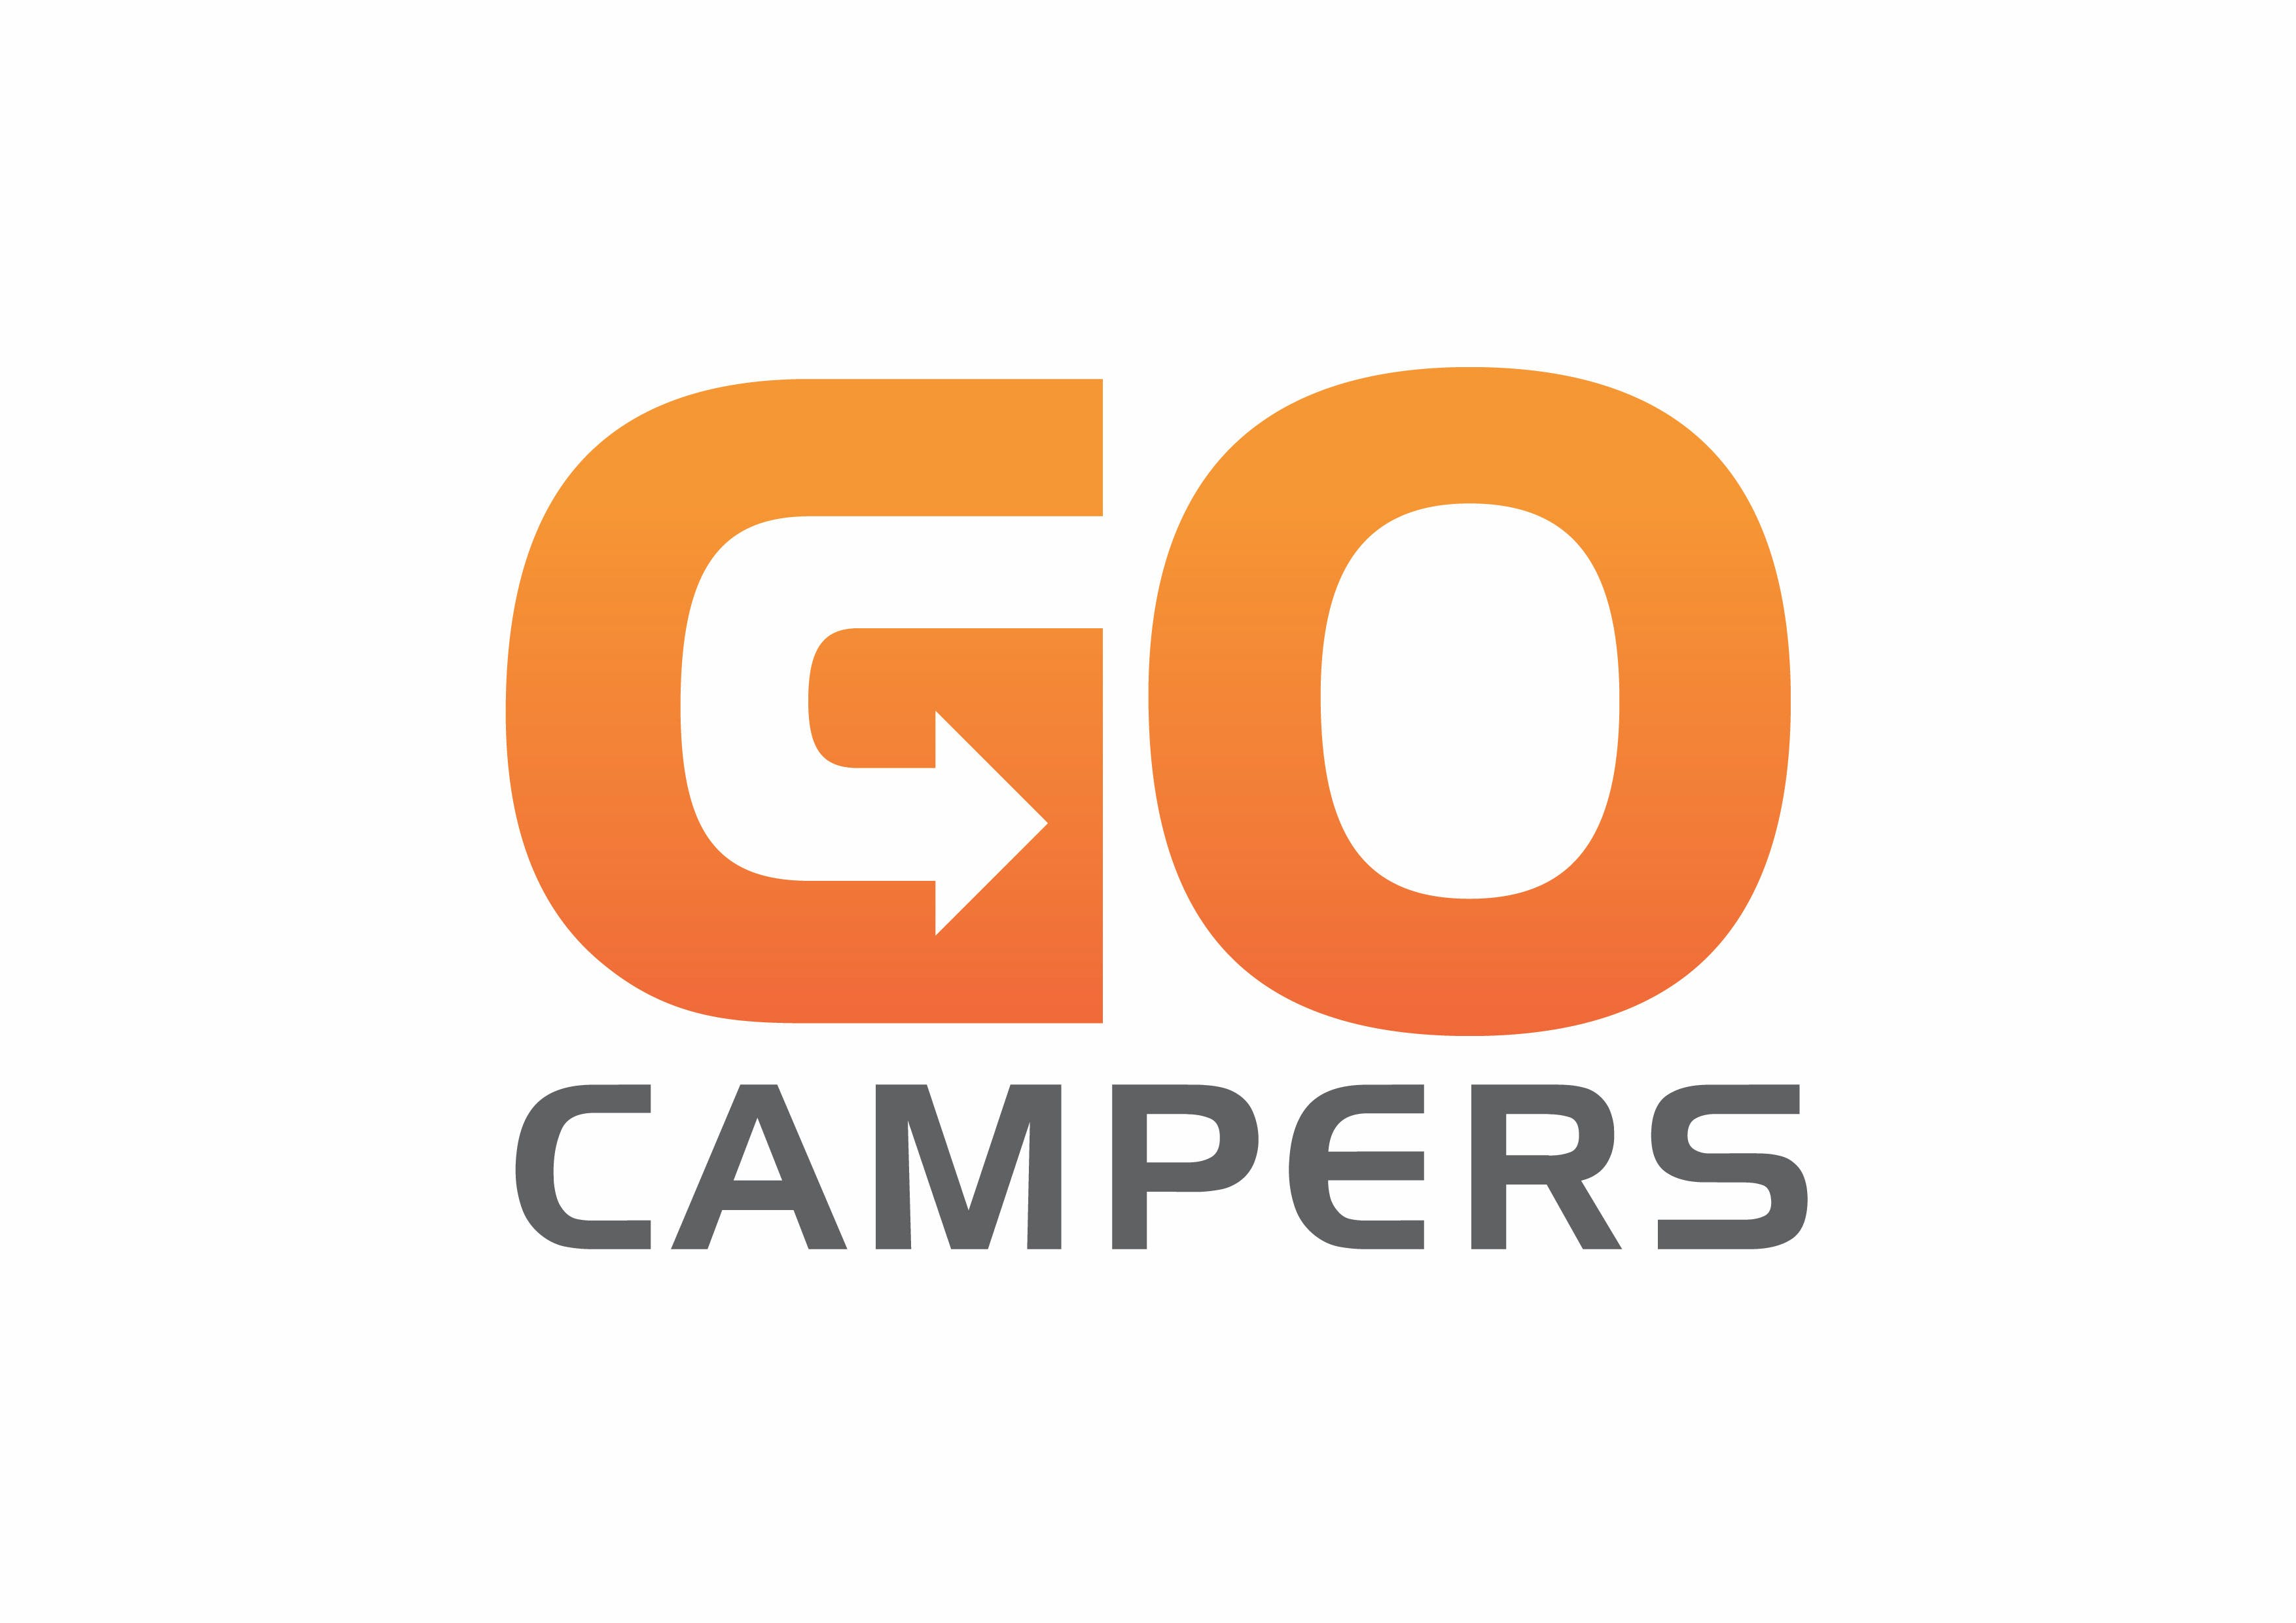 Go Campers